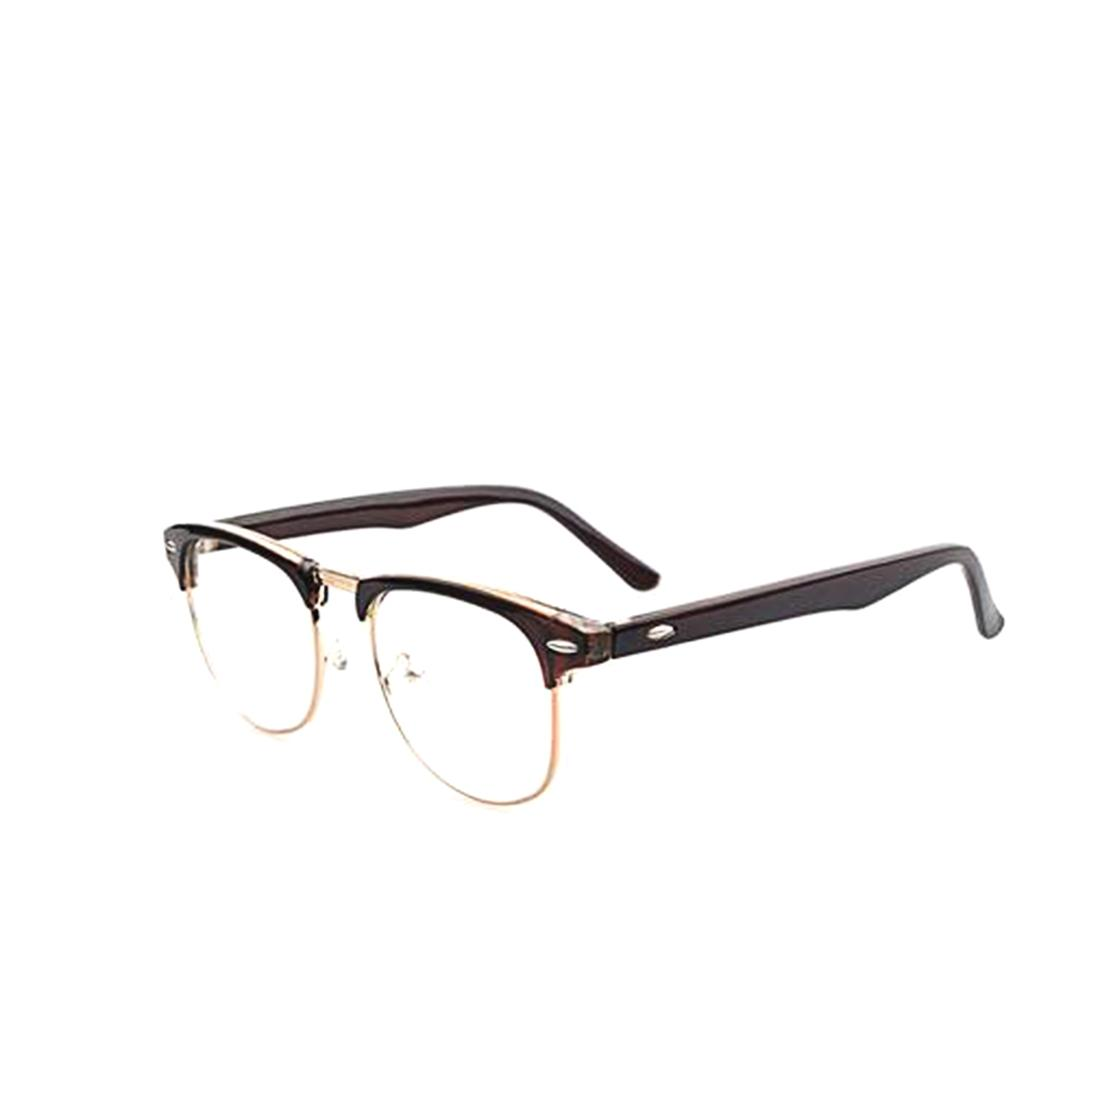 323e1454ea5 Wholesale- HOTSALE Glasses Men Women Vintage Optical Eyeglasses ...